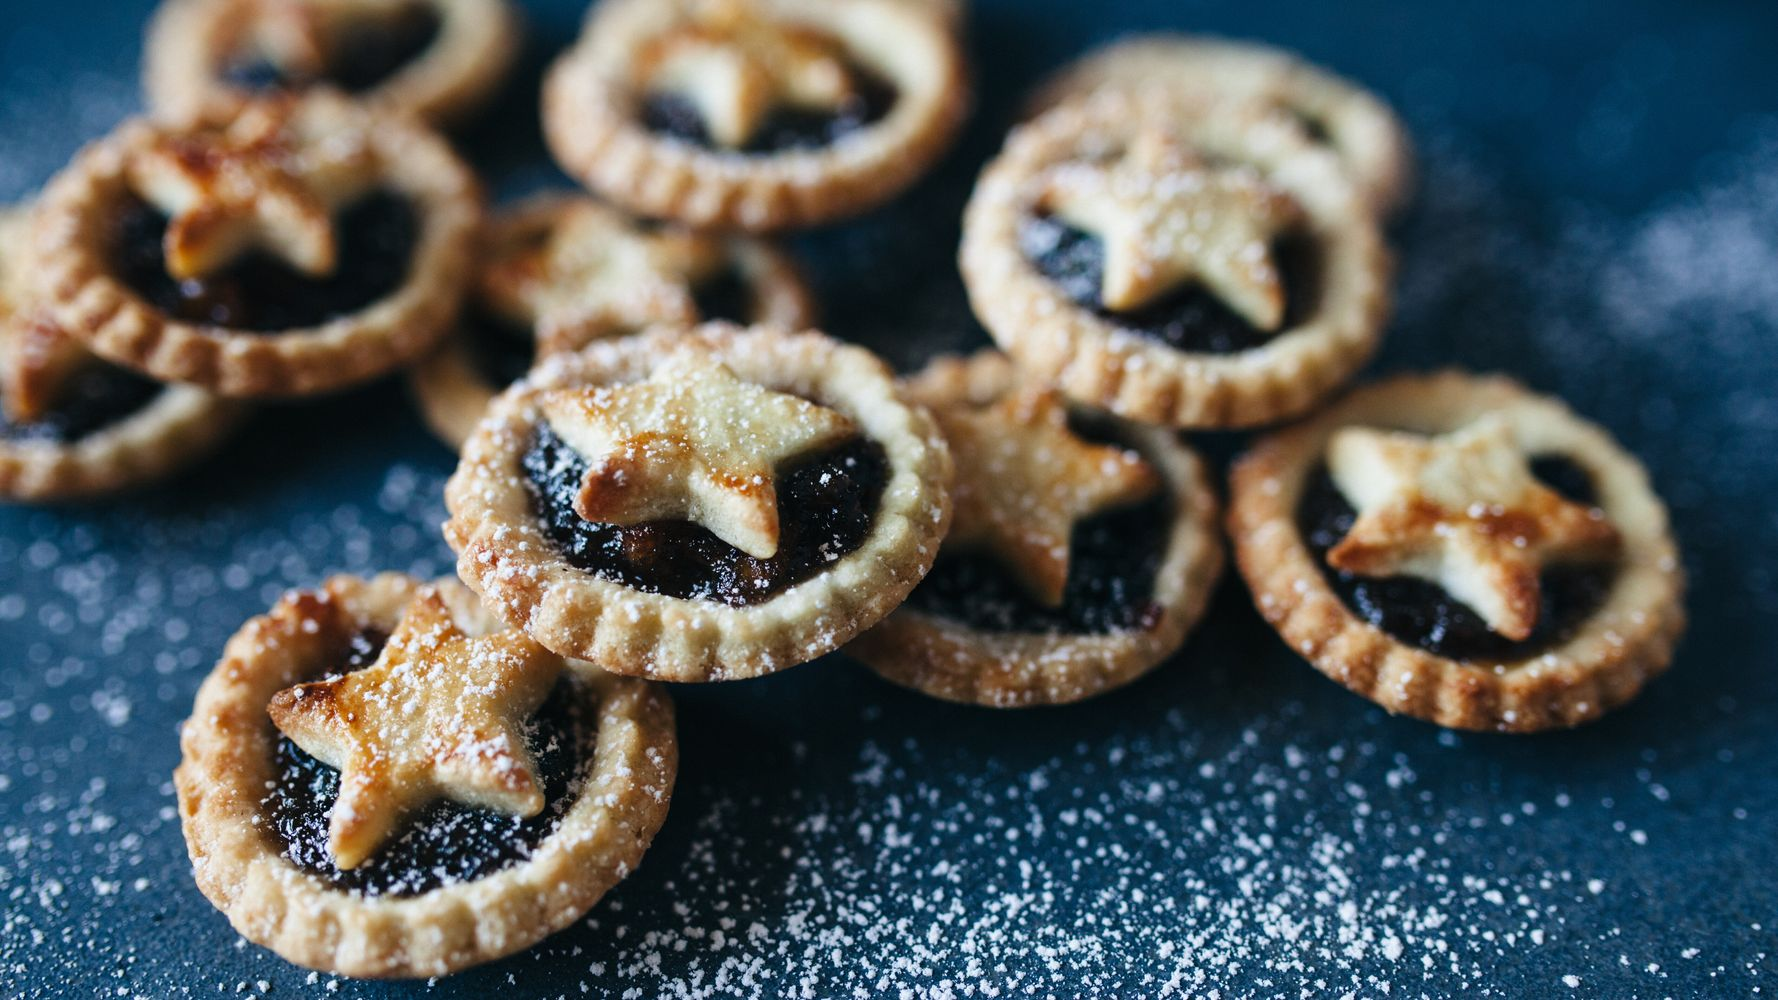 The Best (And Worst) Mince Pies To Buy This Christmas